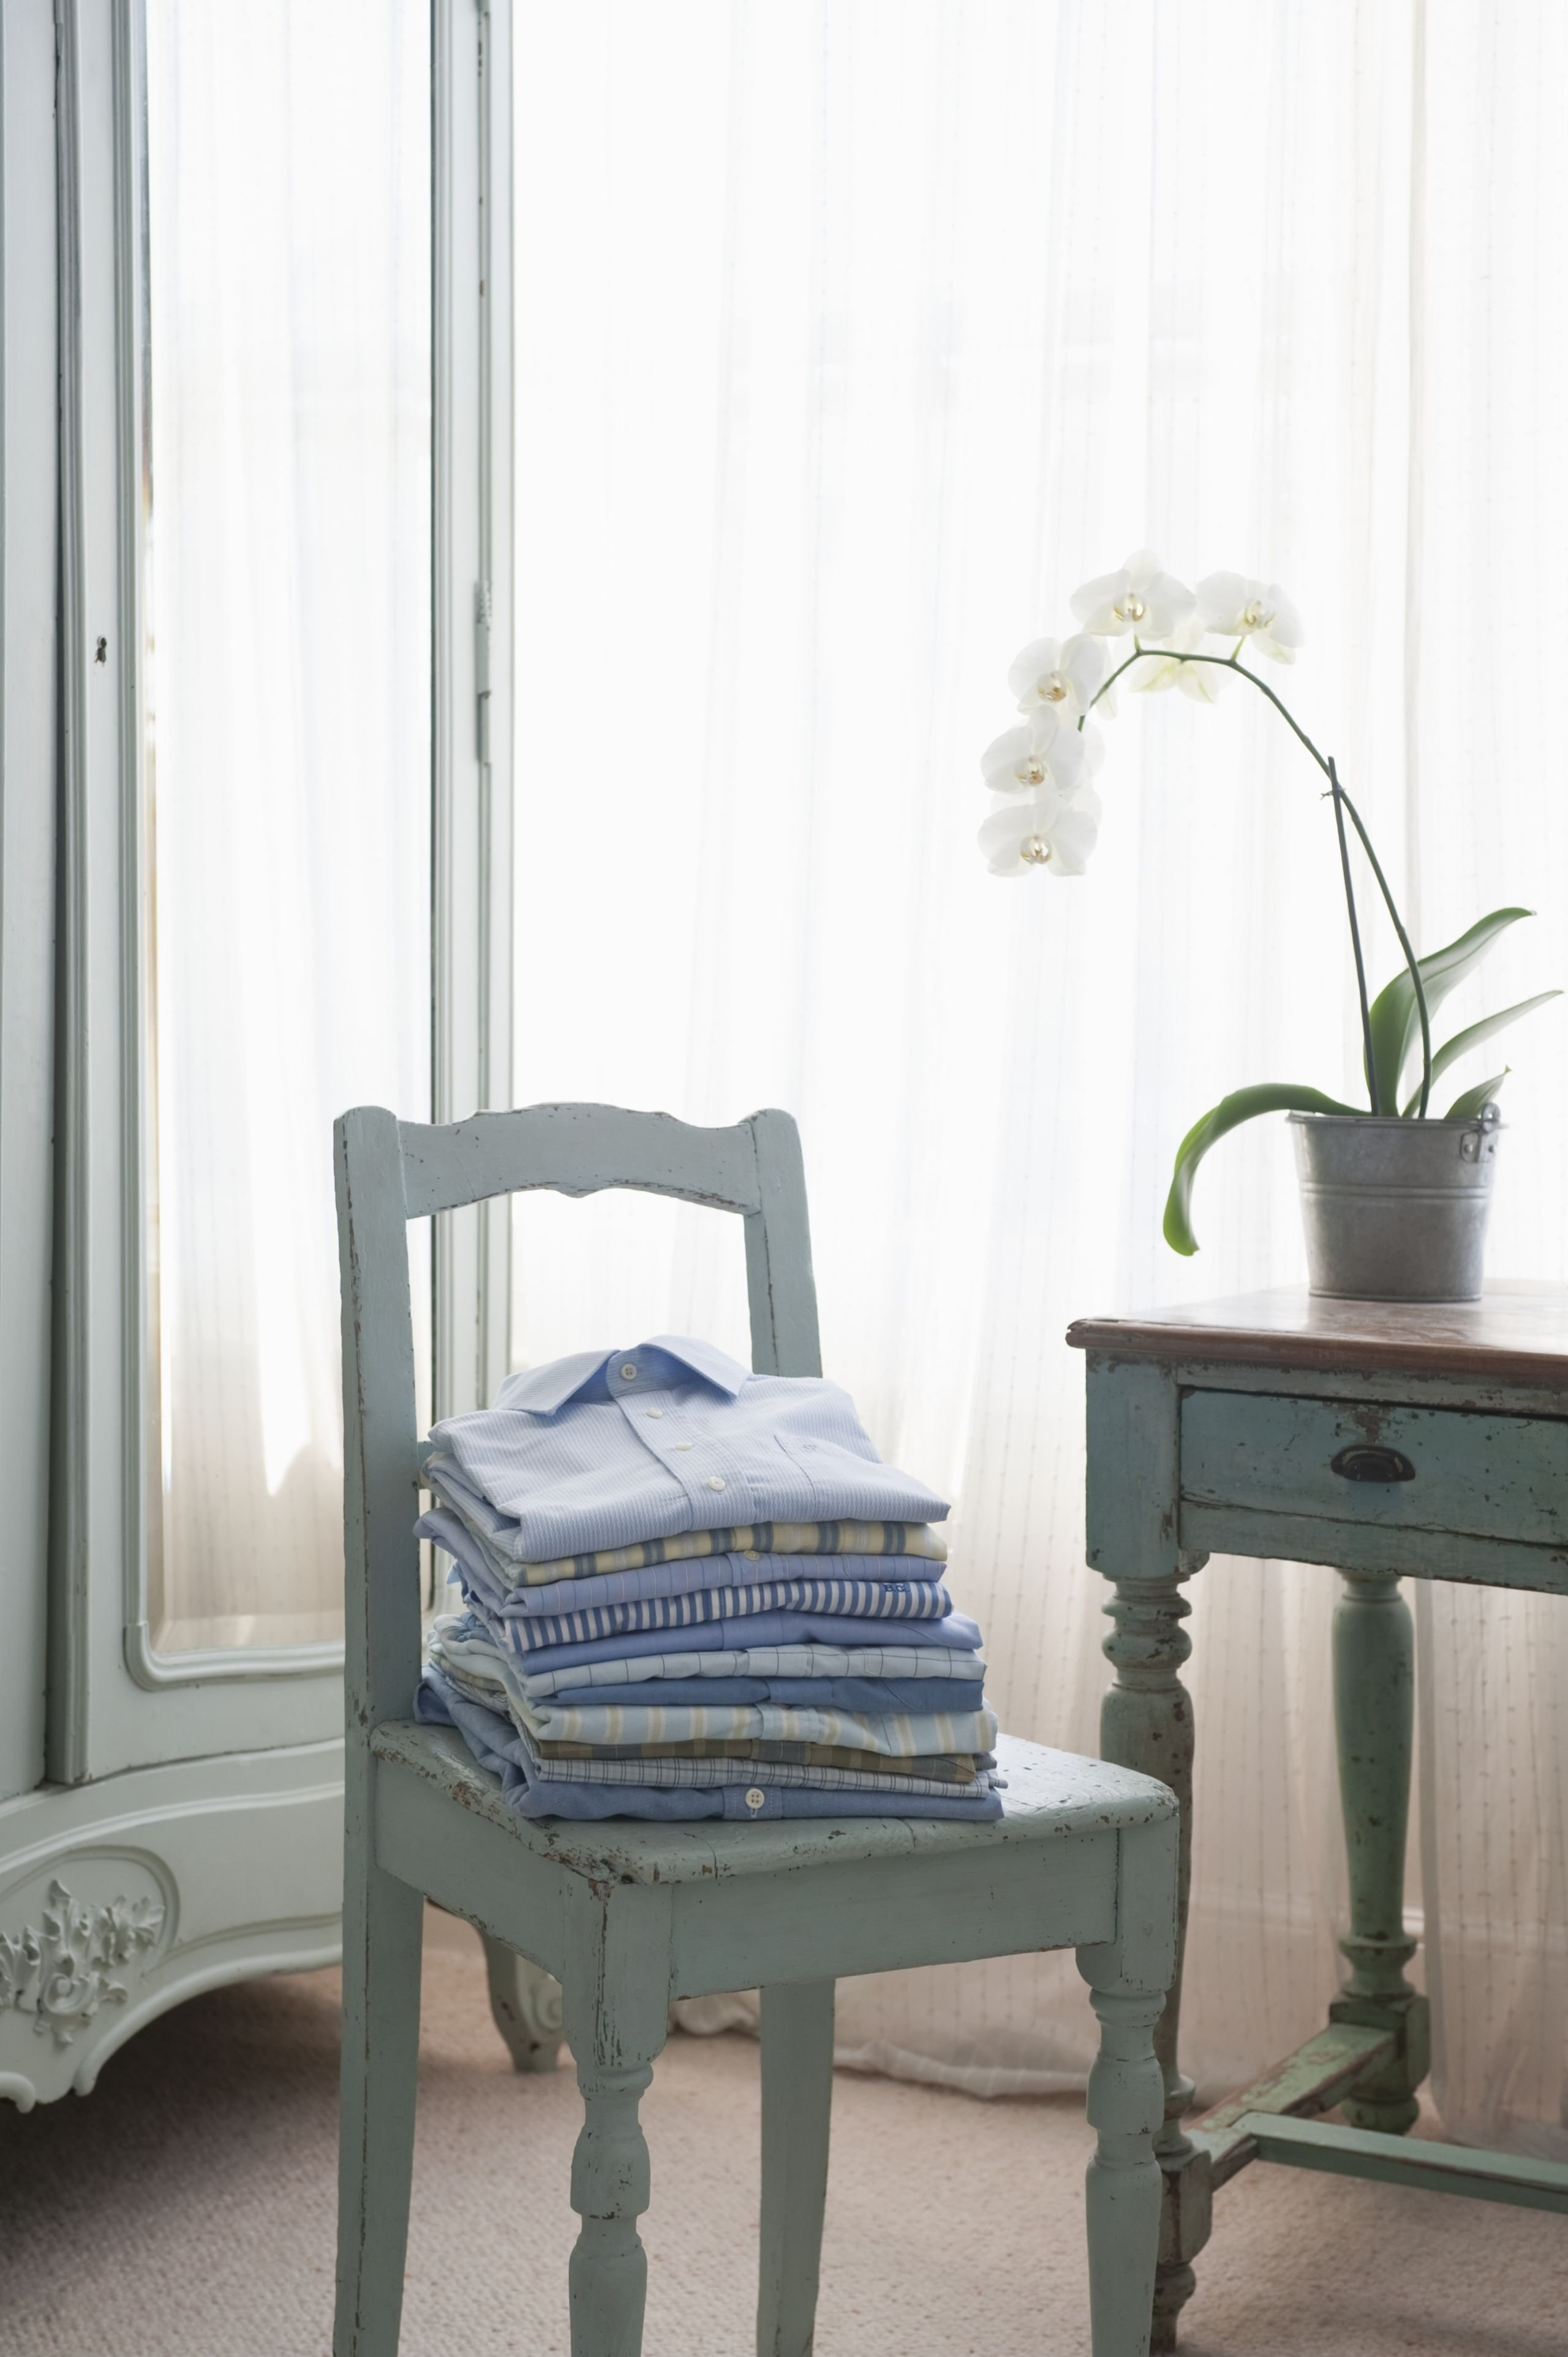 Best How To Organize Your Room How To Clean Your Bedroom With Pictures